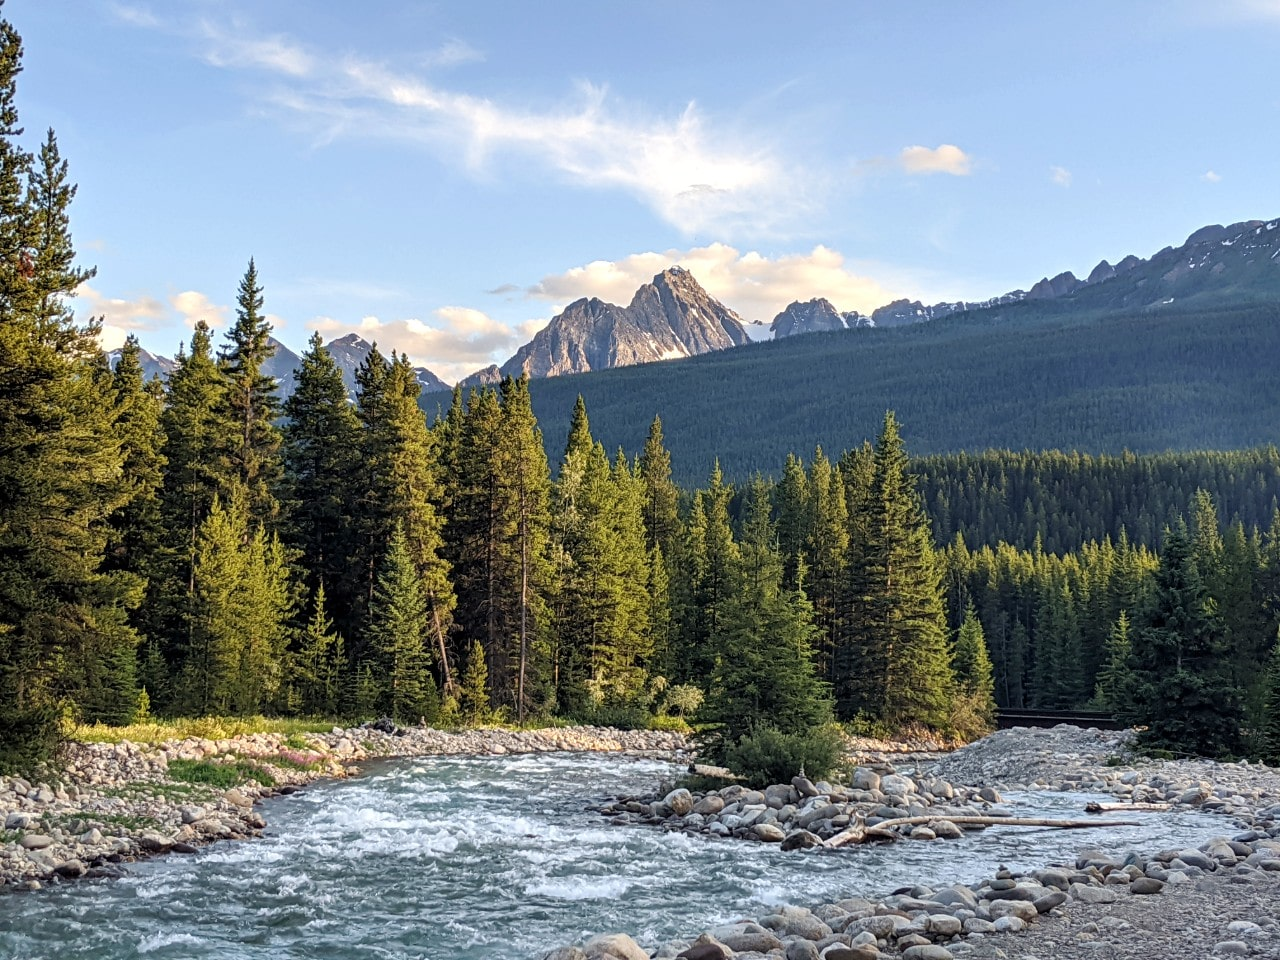 Baker Creek rushes through forest with backdrop of mountains